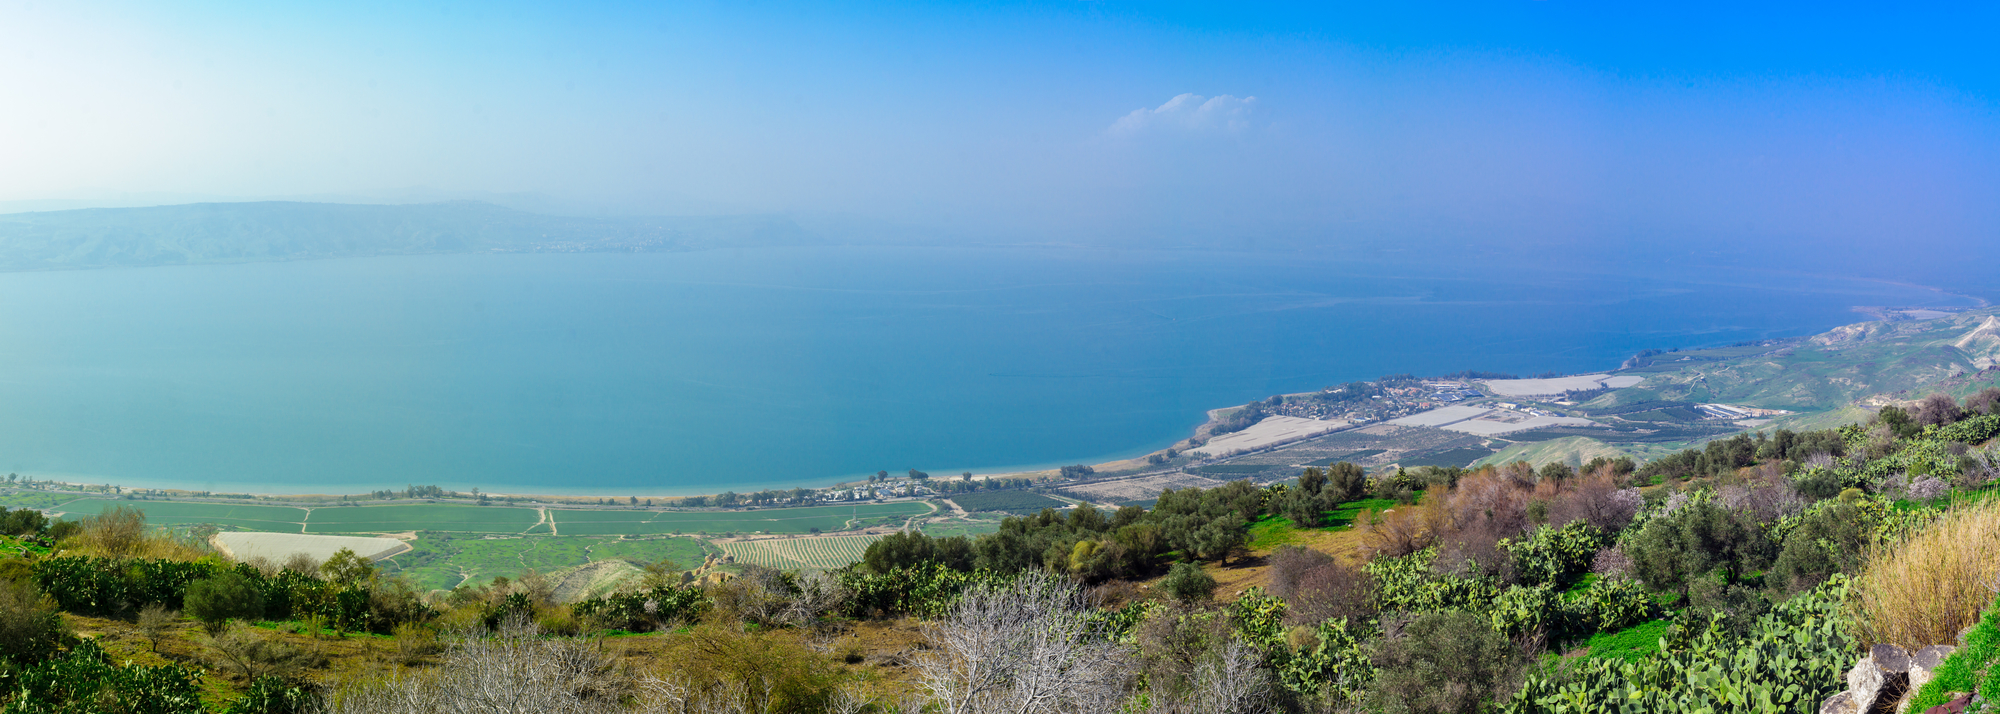 Panoramic view of the Sea of Galilee, from the east, Northern Israel